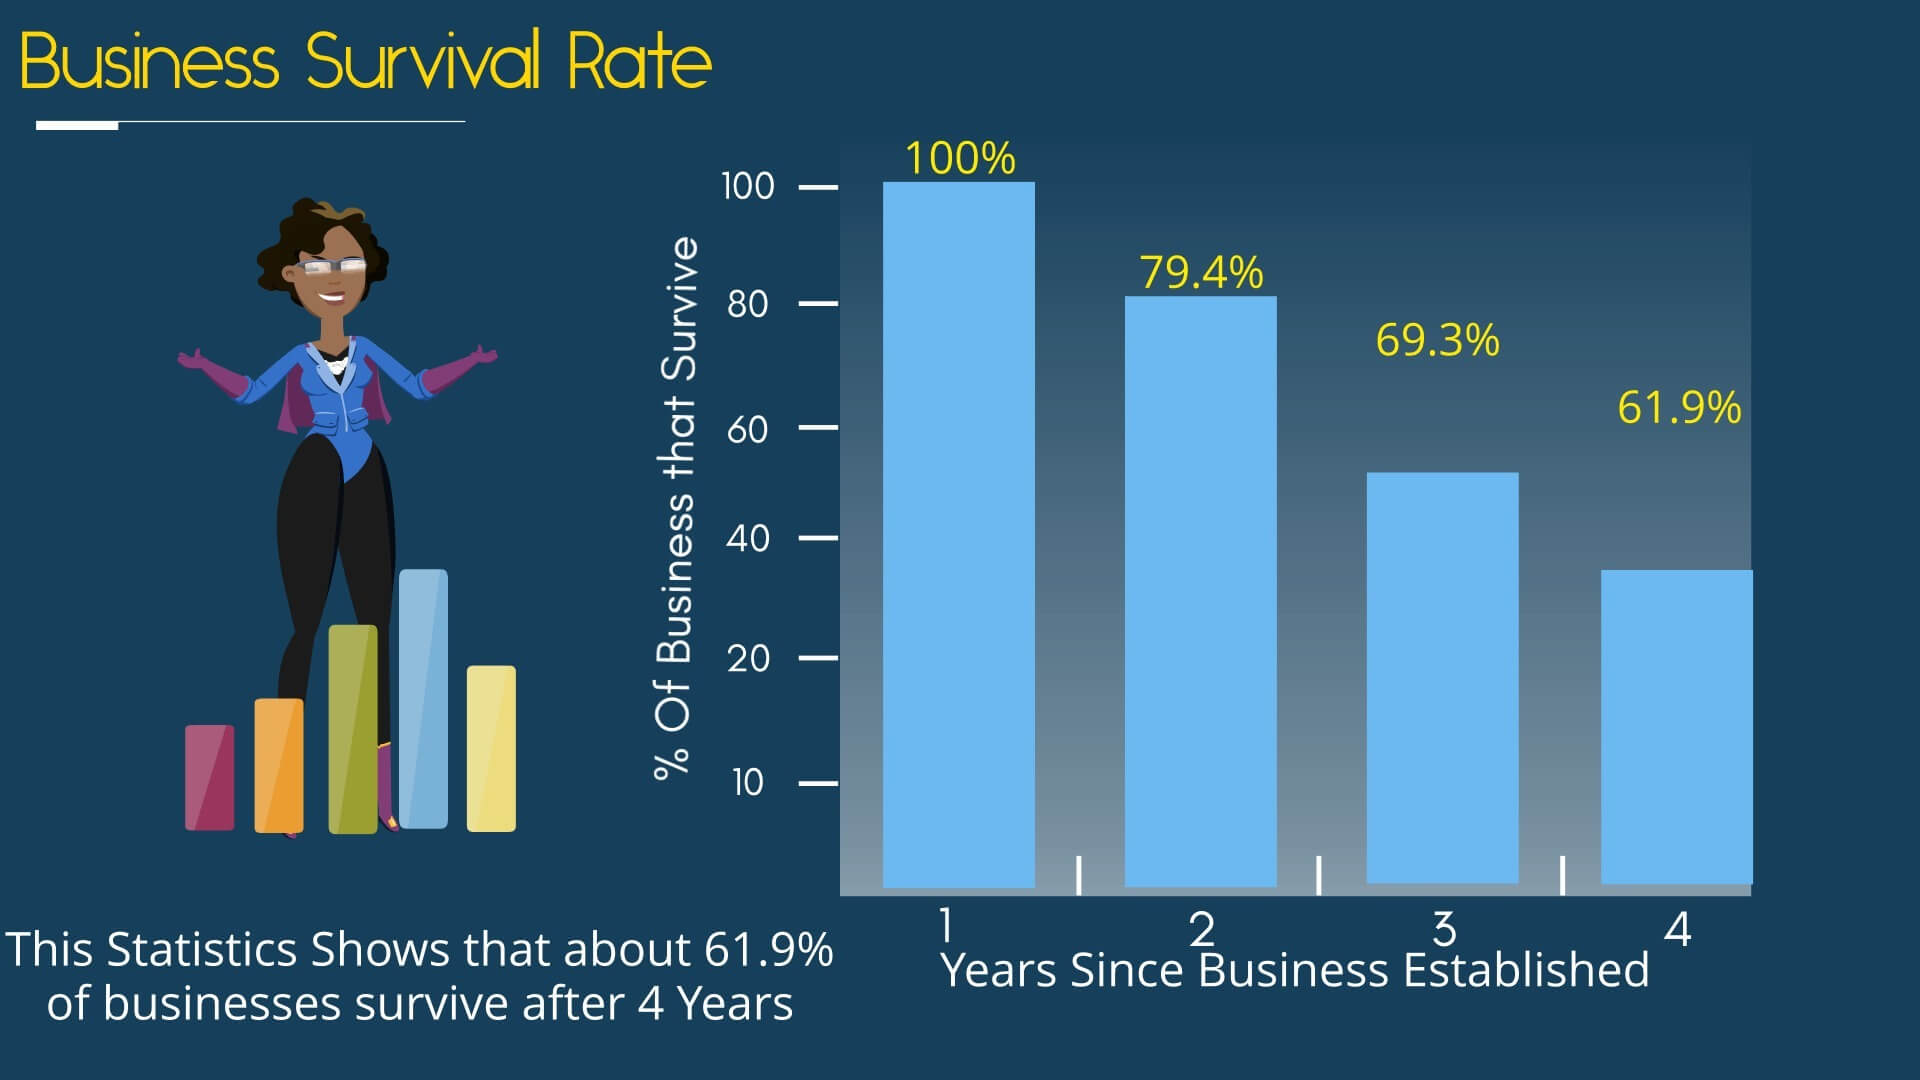 Business Survivaor Rate